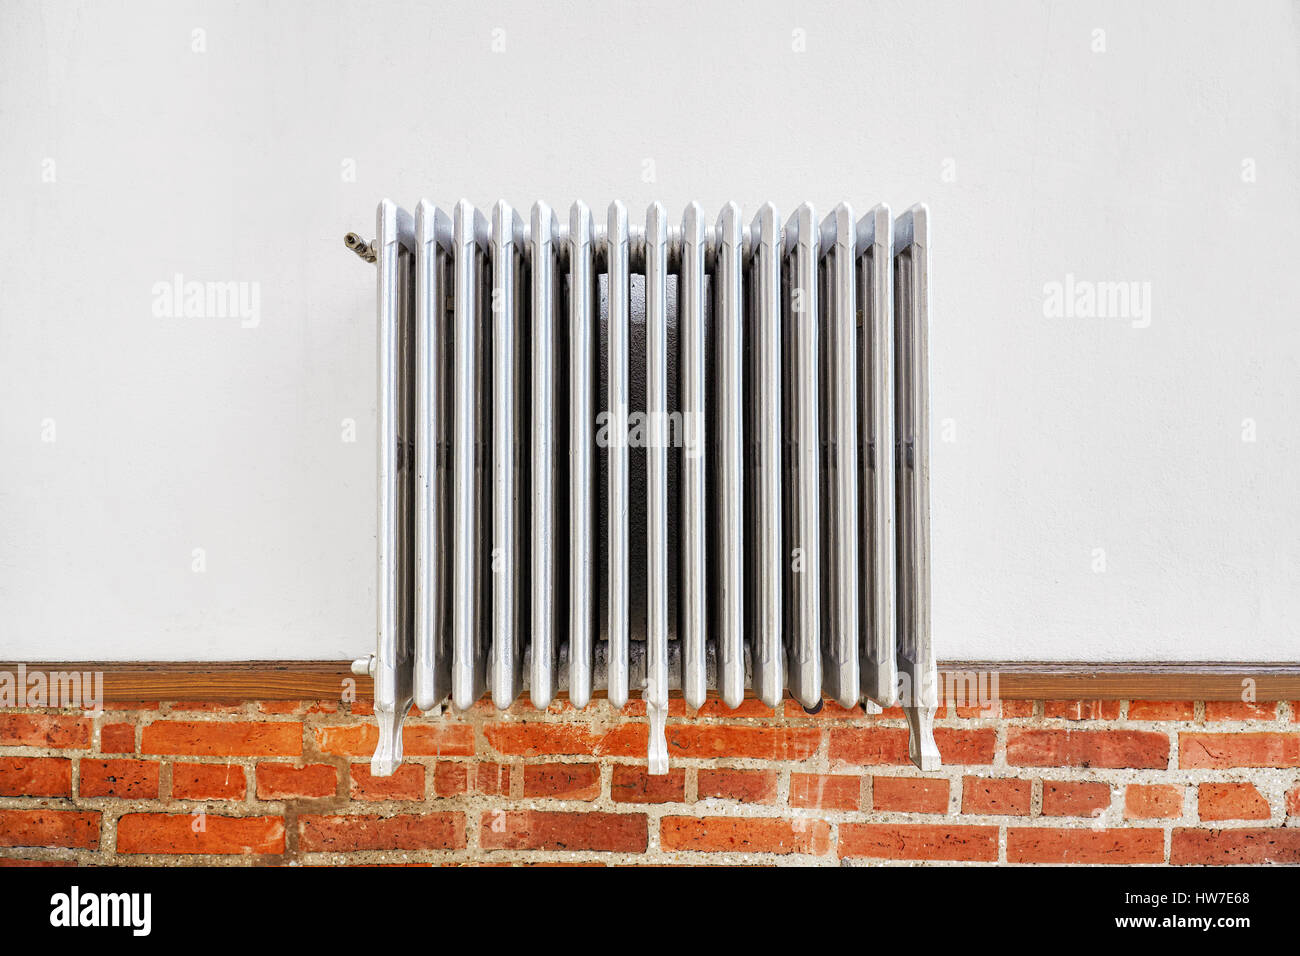 Old heating radiator on a wall. - Stock Image